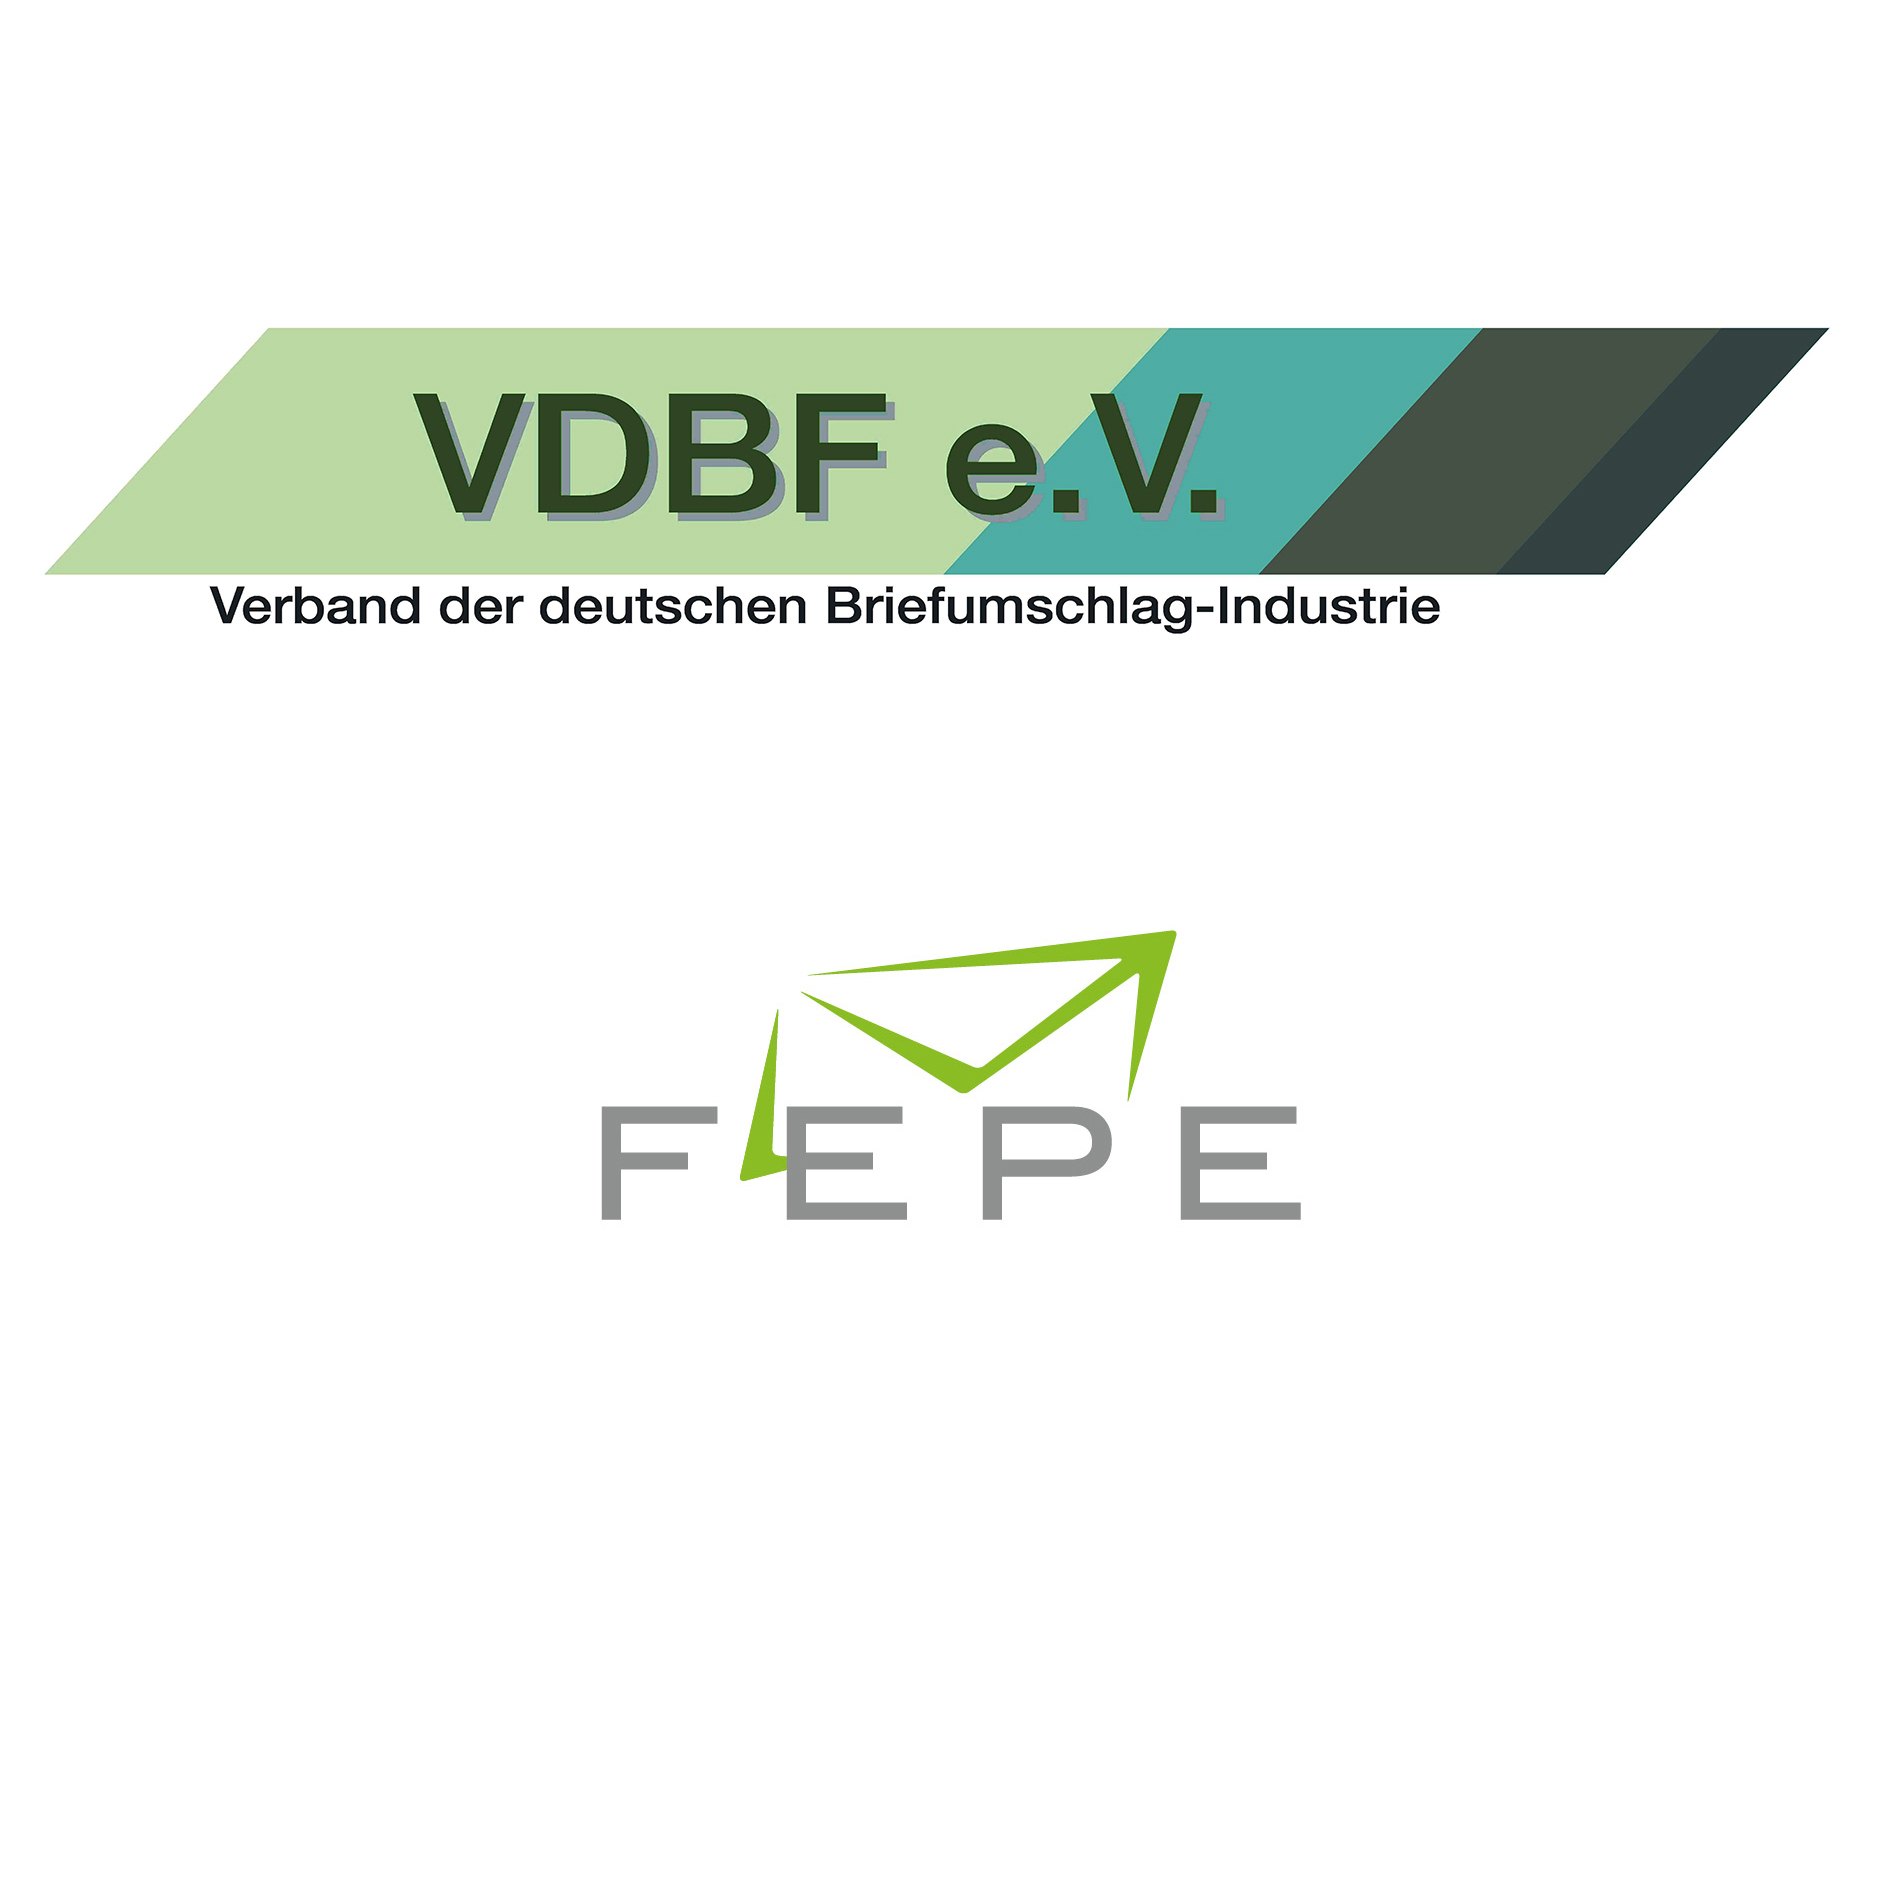 Logos of the Association for the German Envelope Industry (Verband der deutschen Briefumschlag-Industrie e.V. (VDBF)) and FEPE